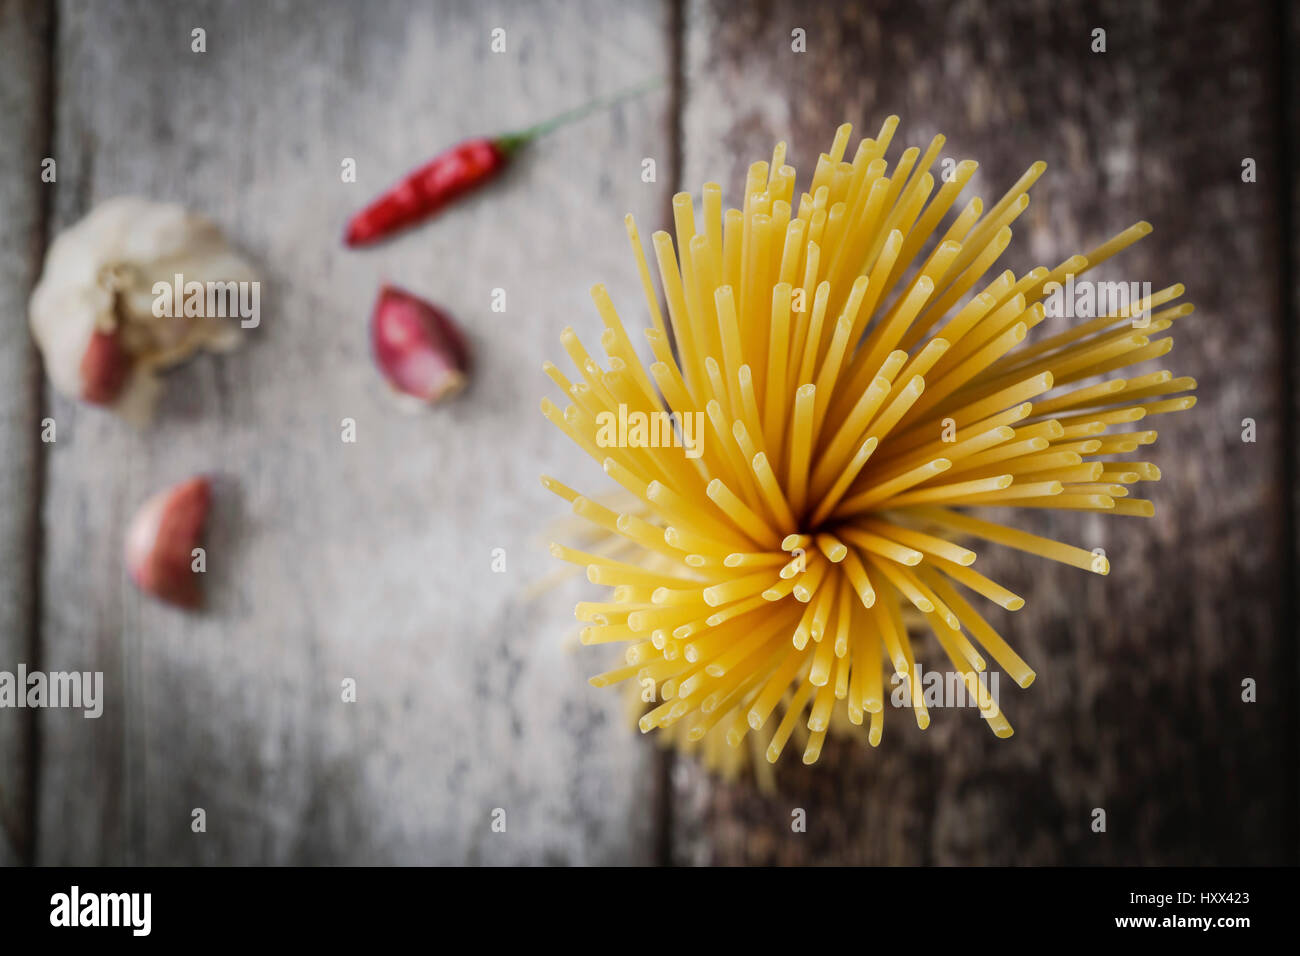 Tied dried spaghetti pasta on a rustic background - Stock Image